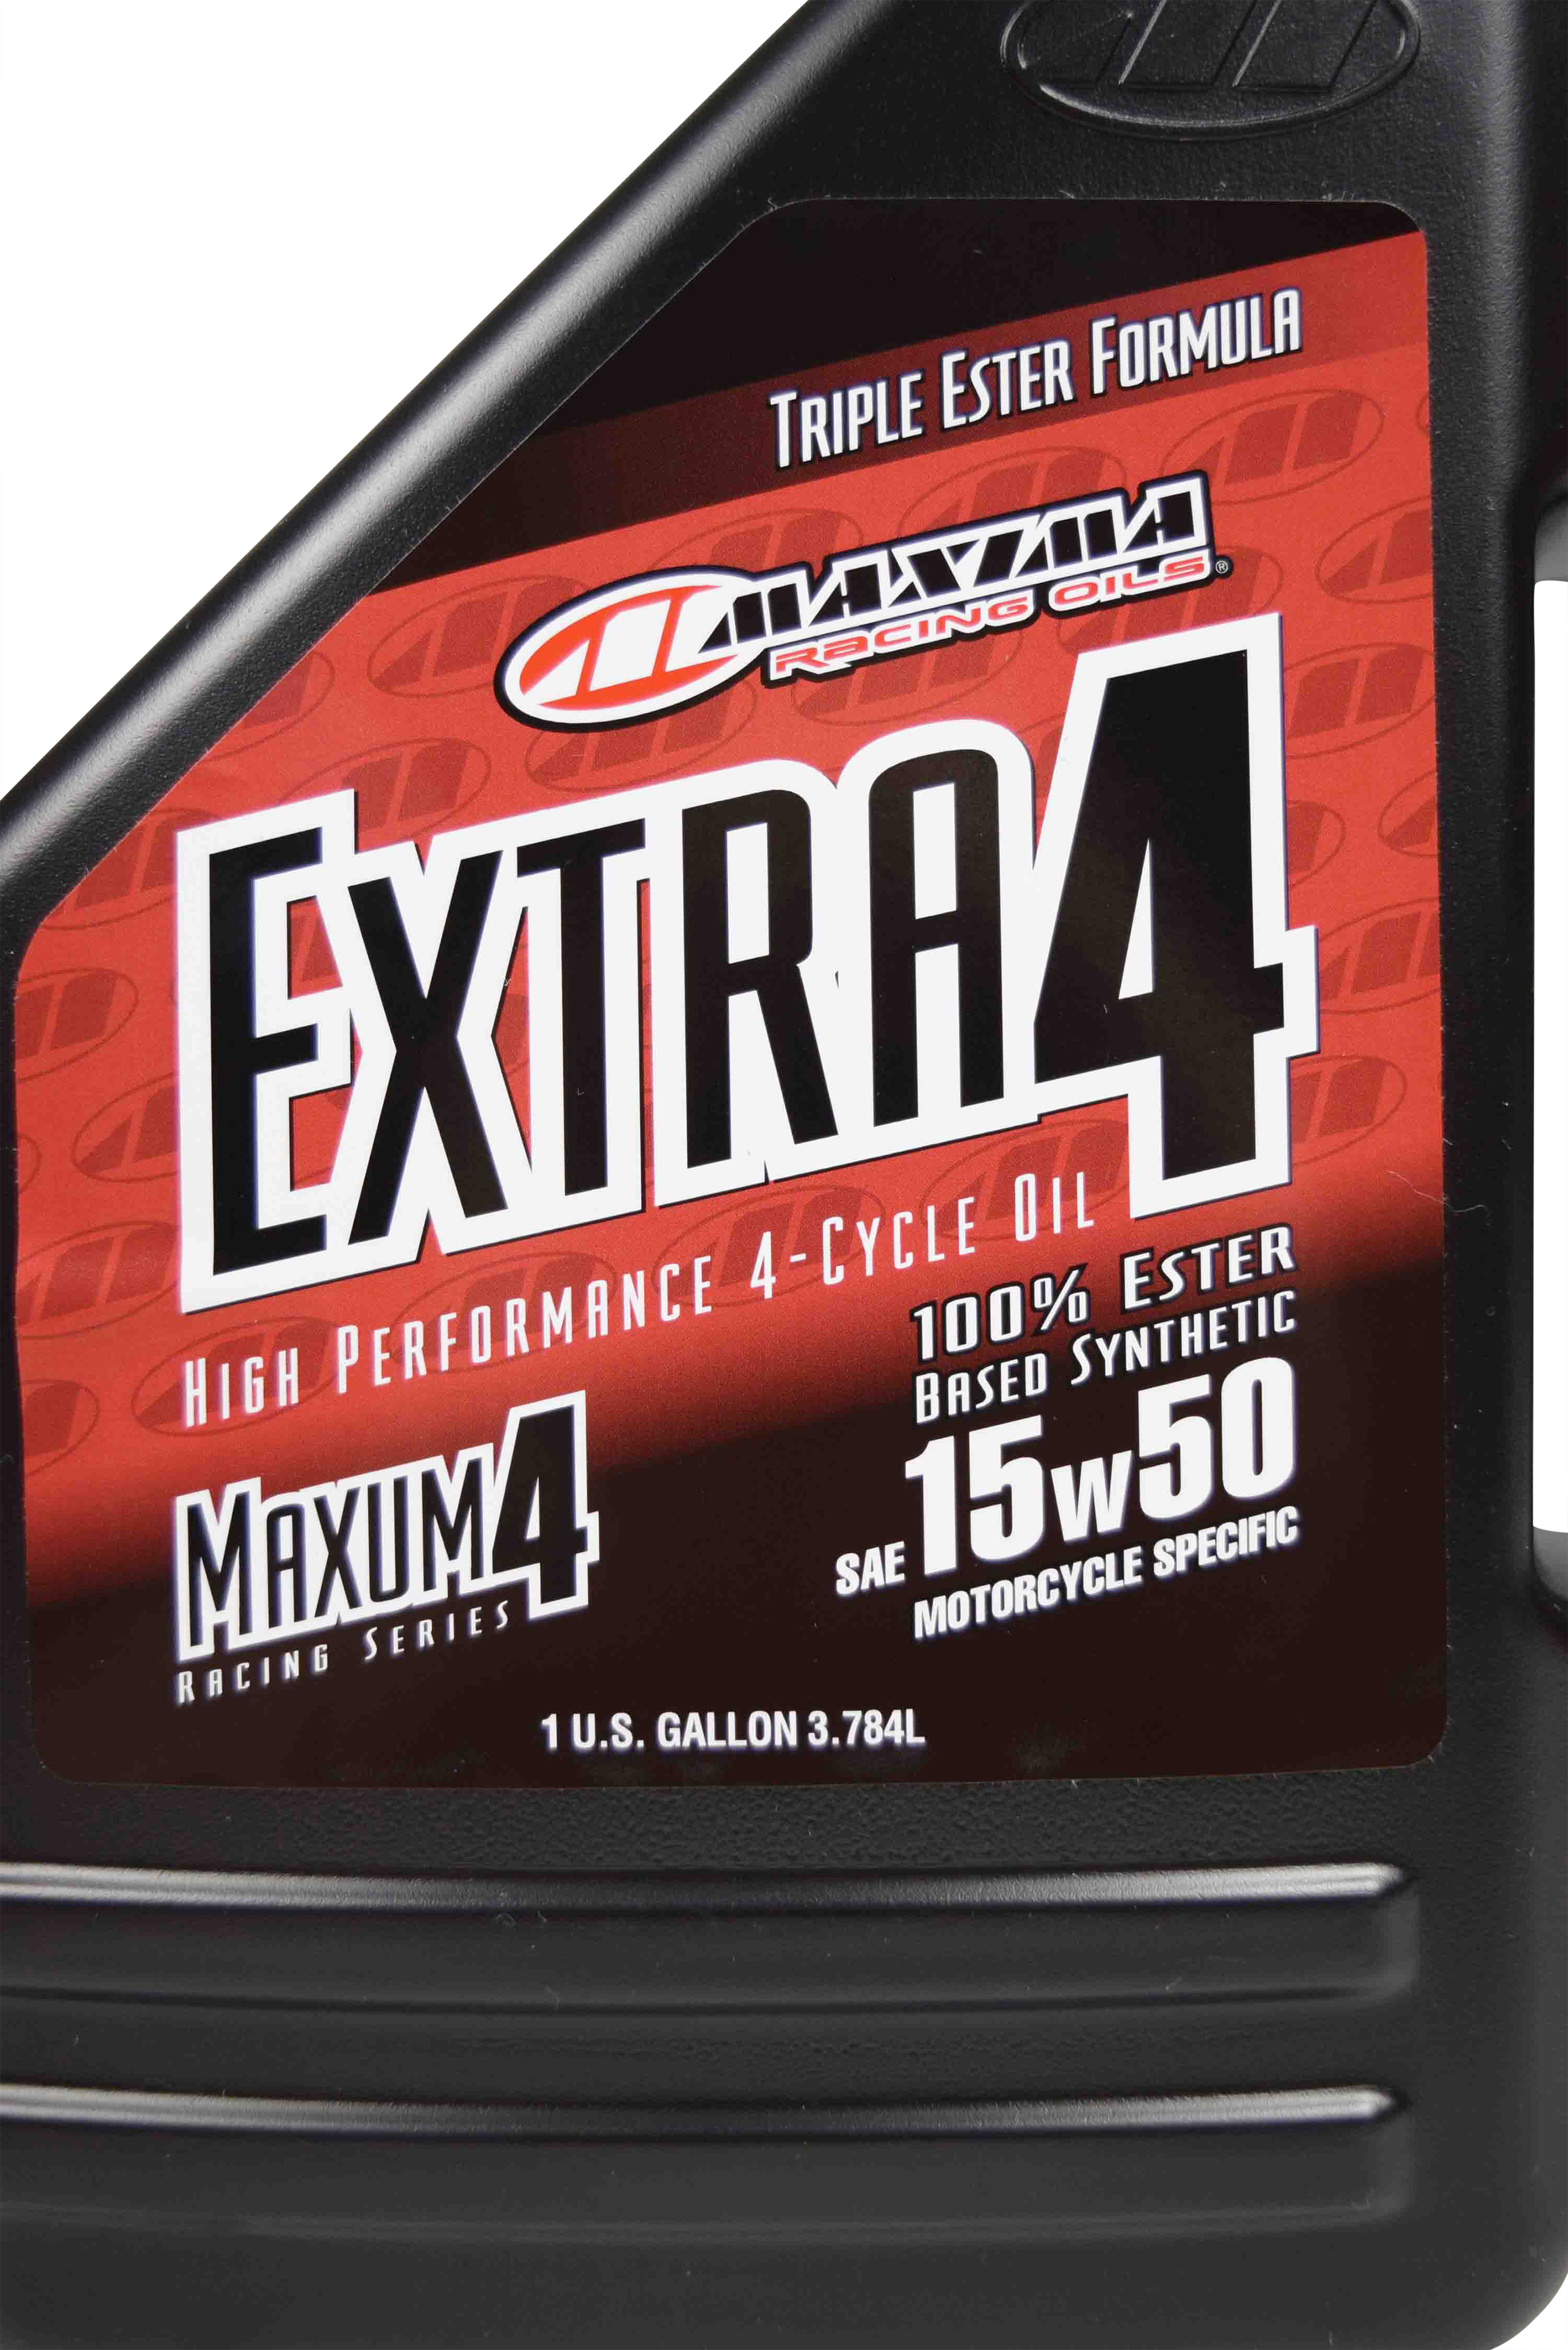 Maxima-329128-Extra4-15W-50-Synthetic-4T-Motorcycle-Engine-Oil-1-Gallon-Jug-image-4